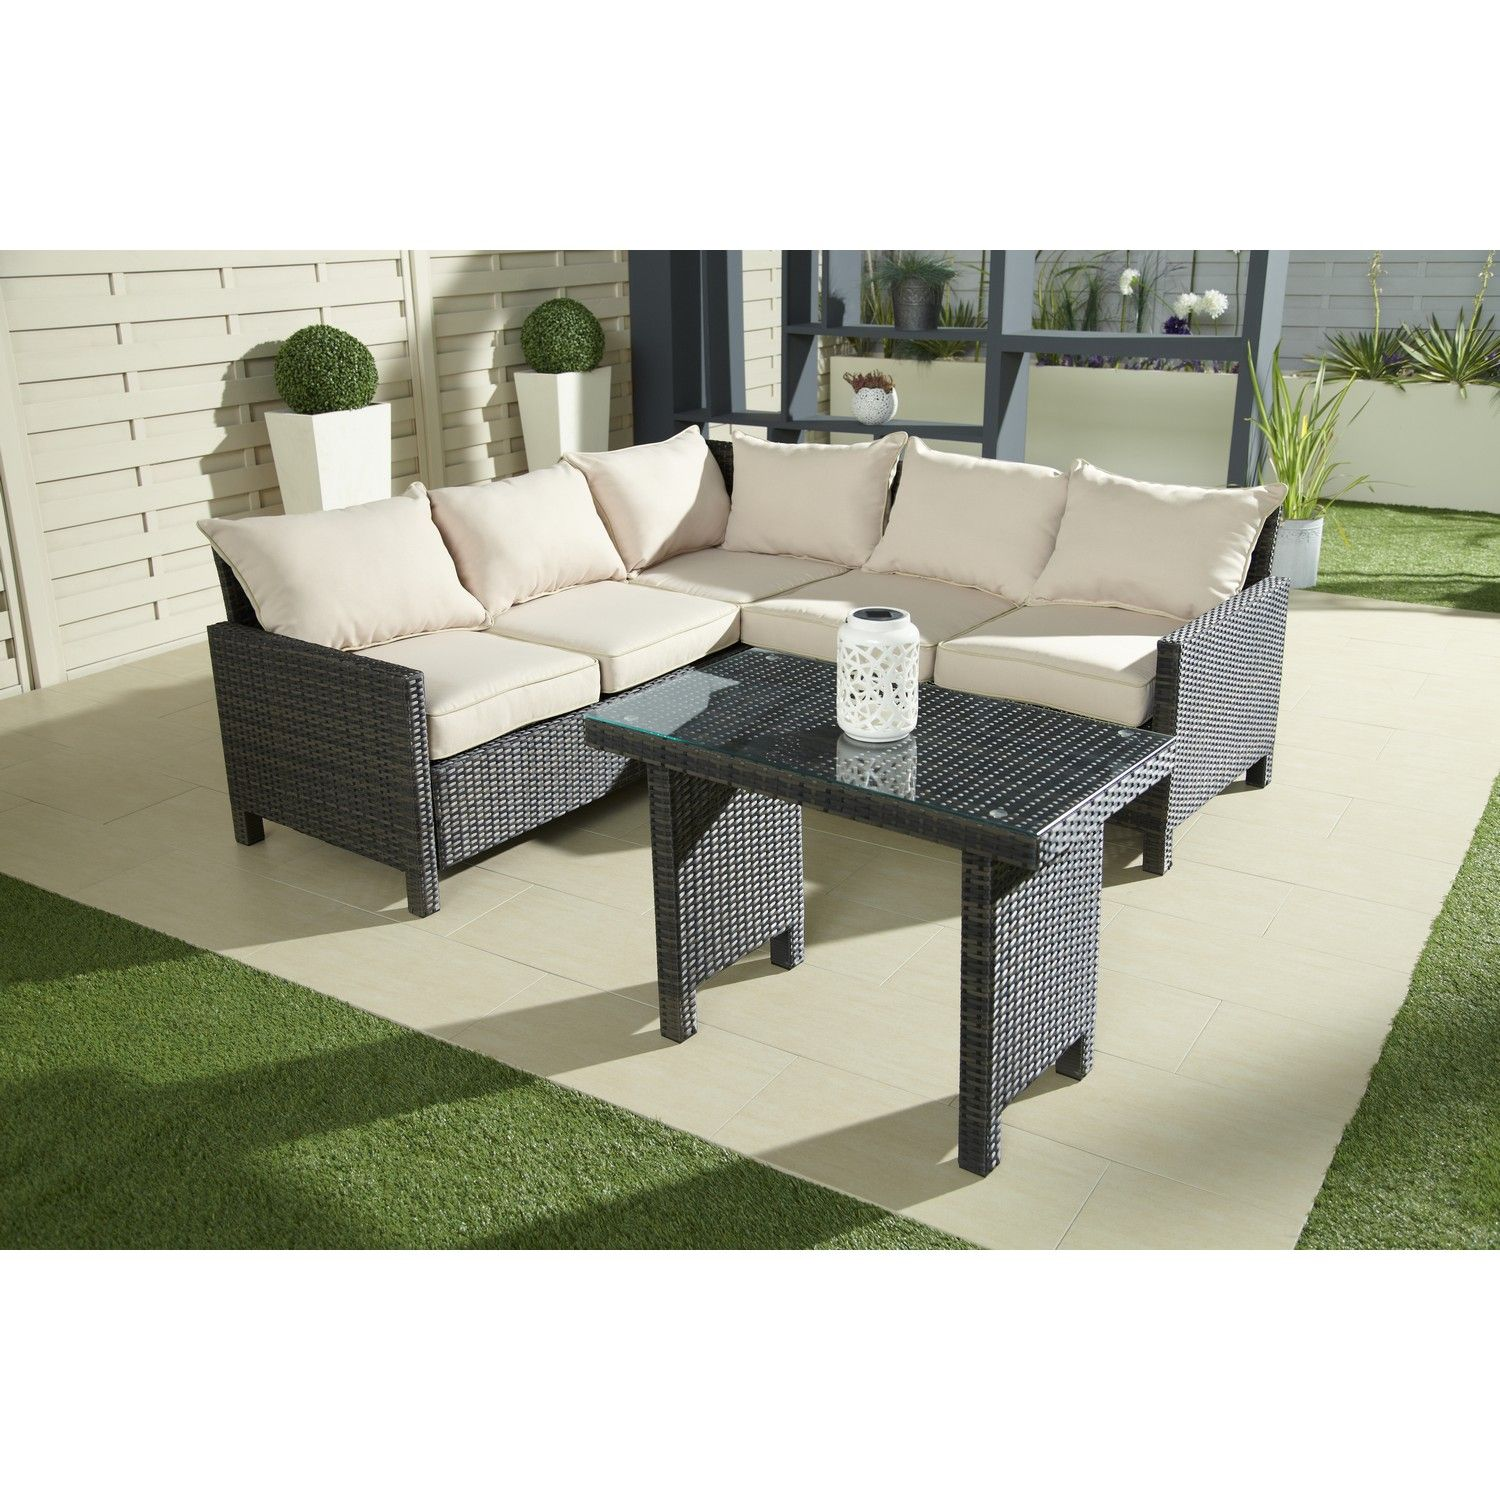 WOW Rattan Effect Garden Corner Sofa Collect in Store